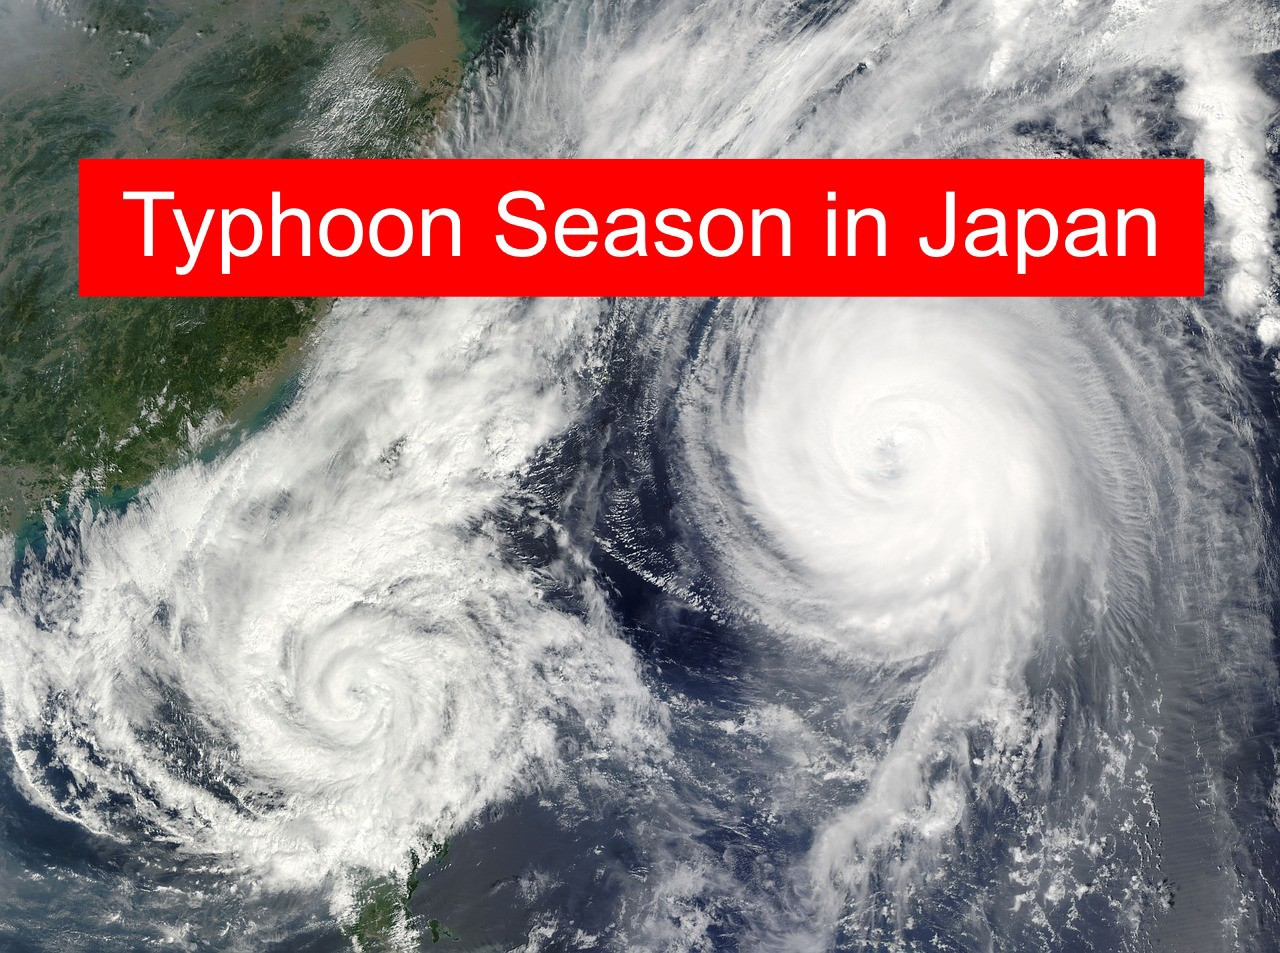 Japan Typhoon Season 2019: Things to Know